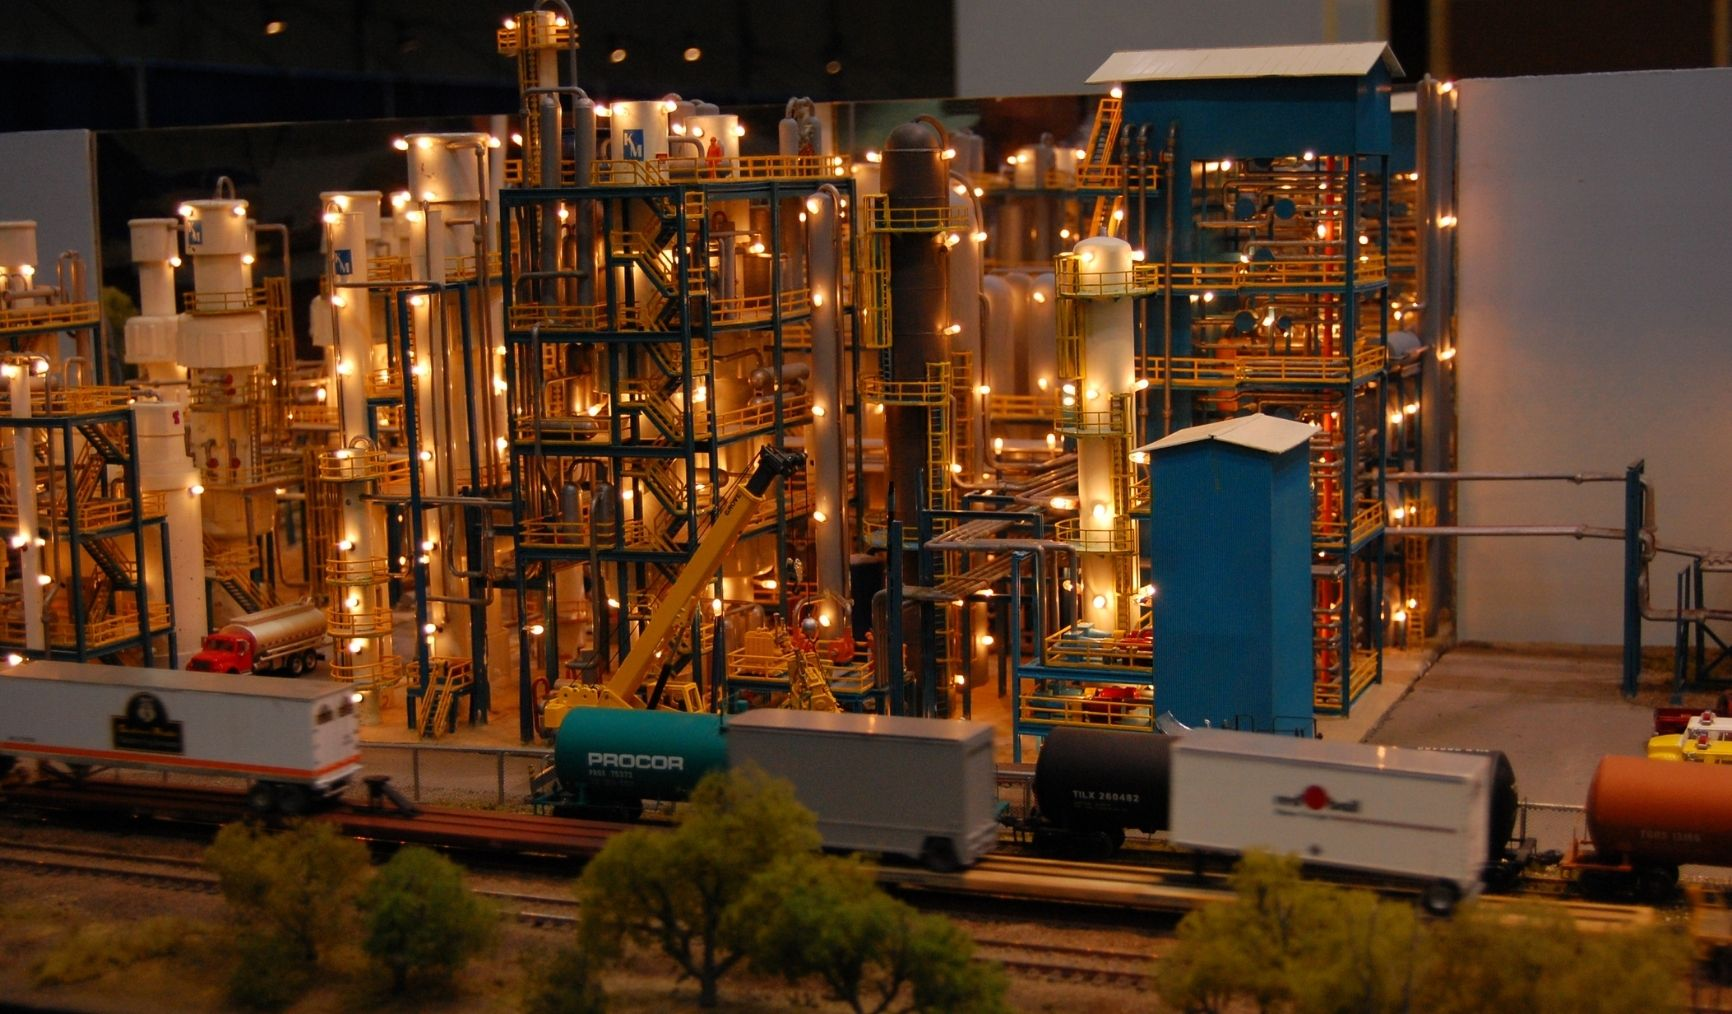 Modular refineries and the path to reducing fuel imports